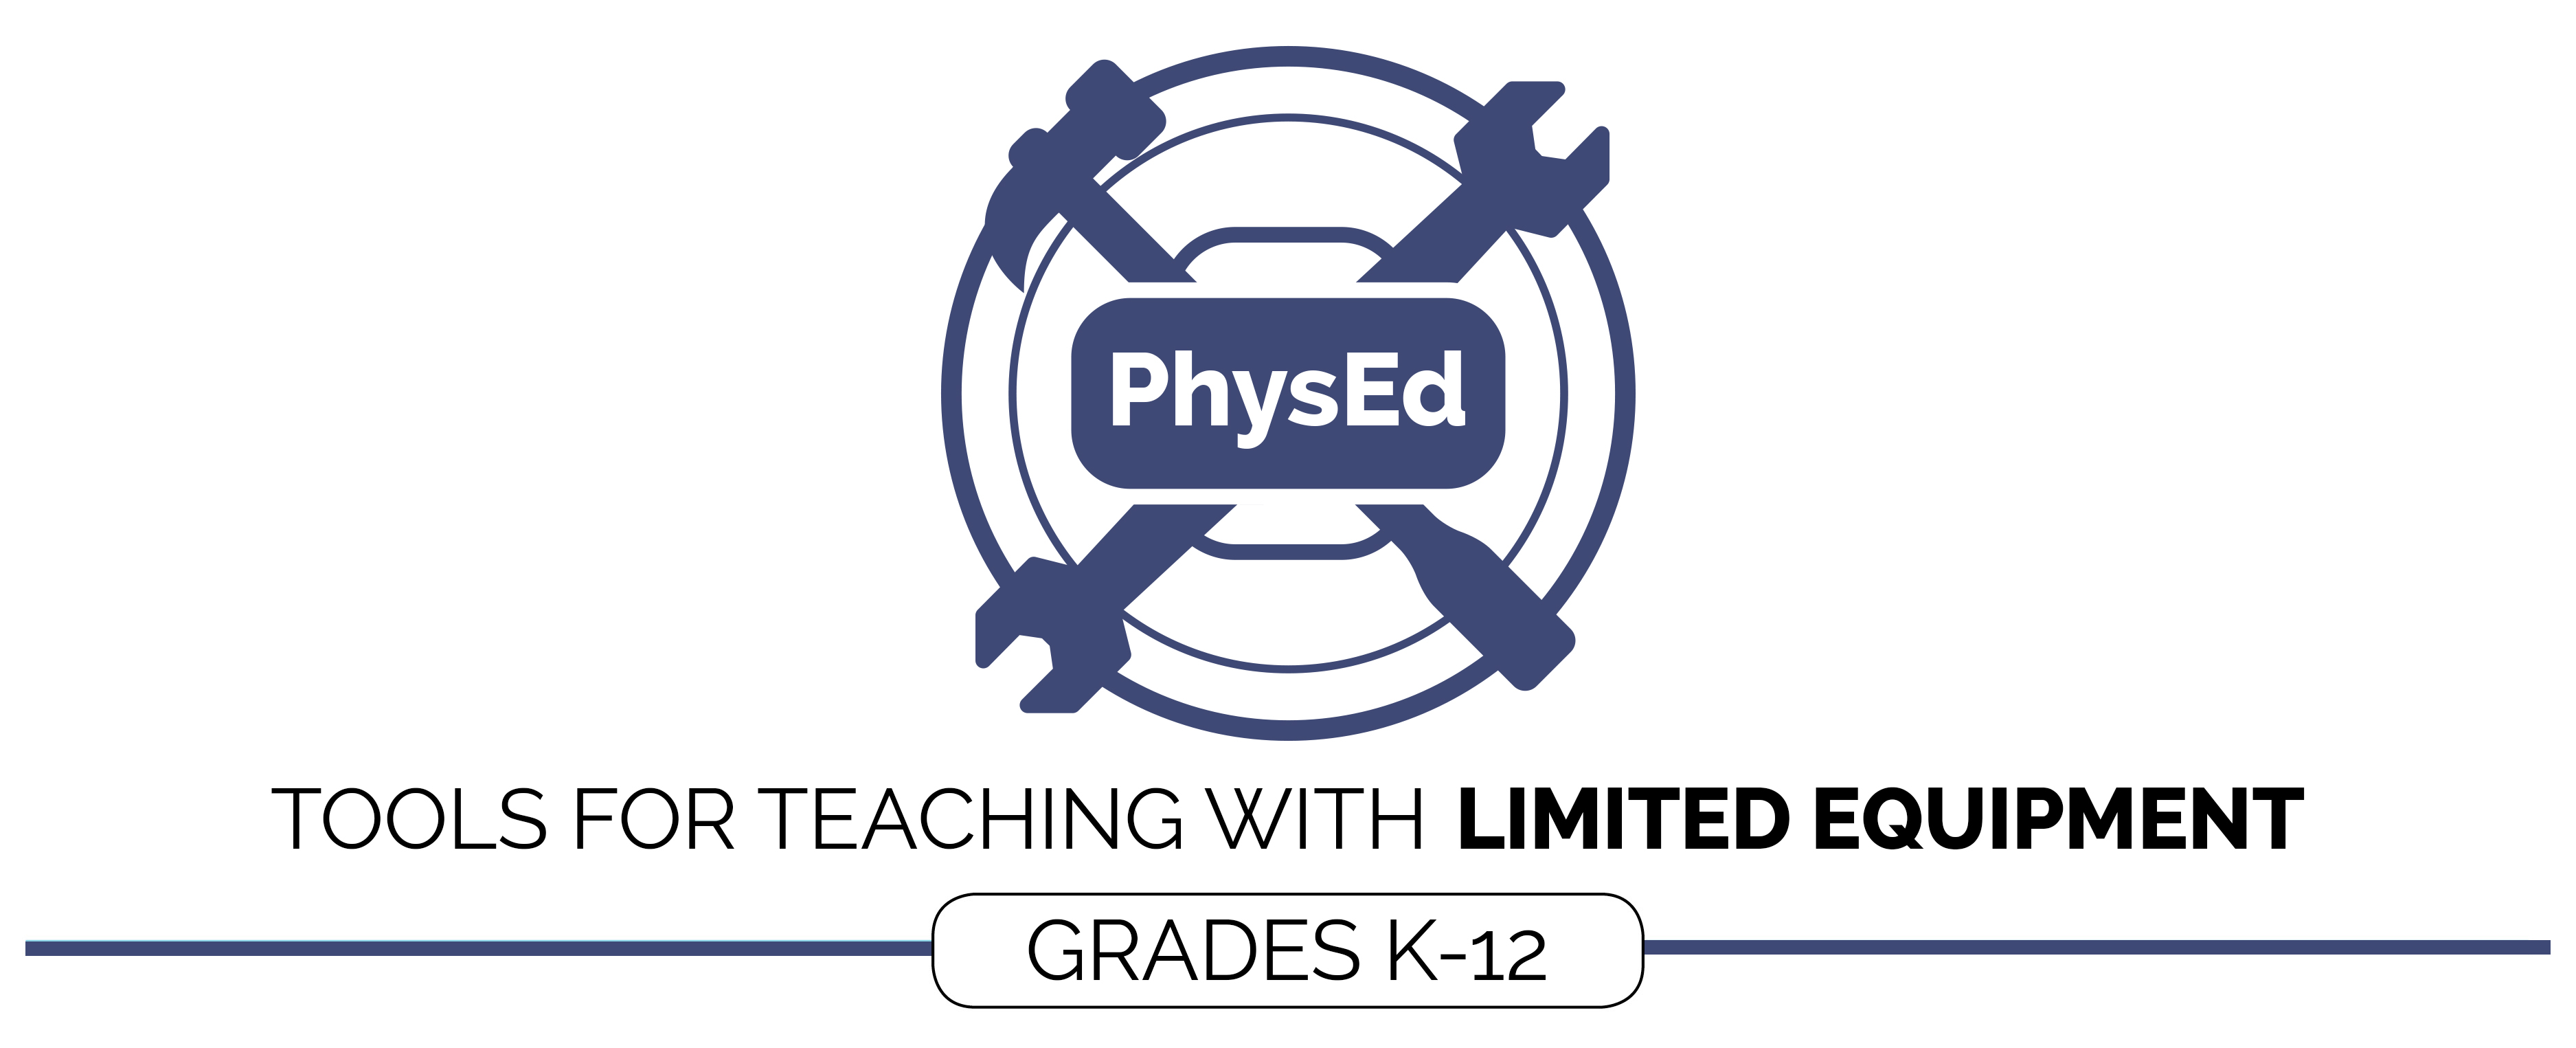 Limited Equipment(Grades K-12)